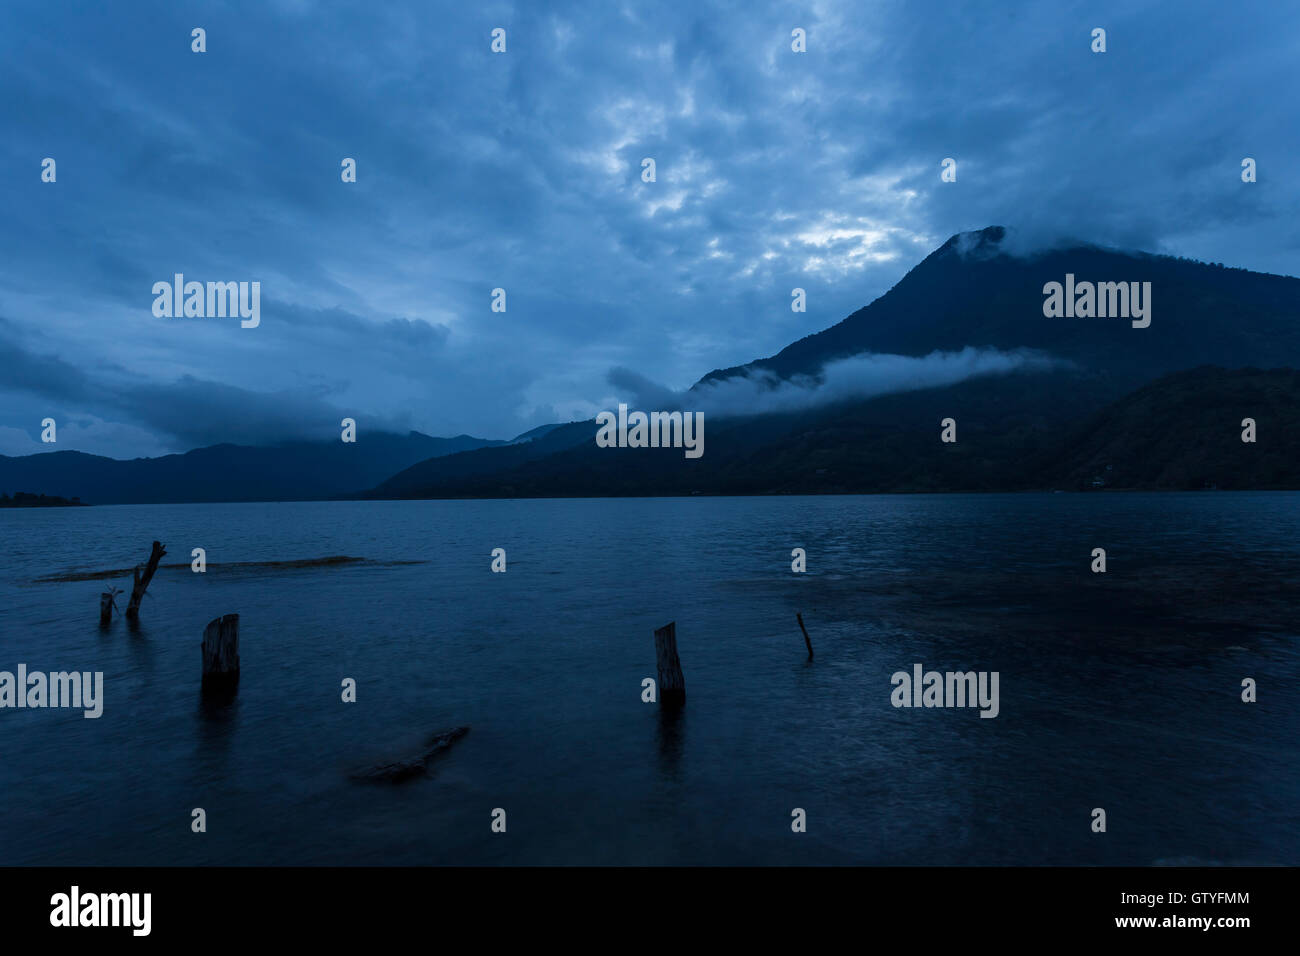 A calm and serene scene of the San Pedro Volcano from Santiago Atitlan at dusk. - Stock Image